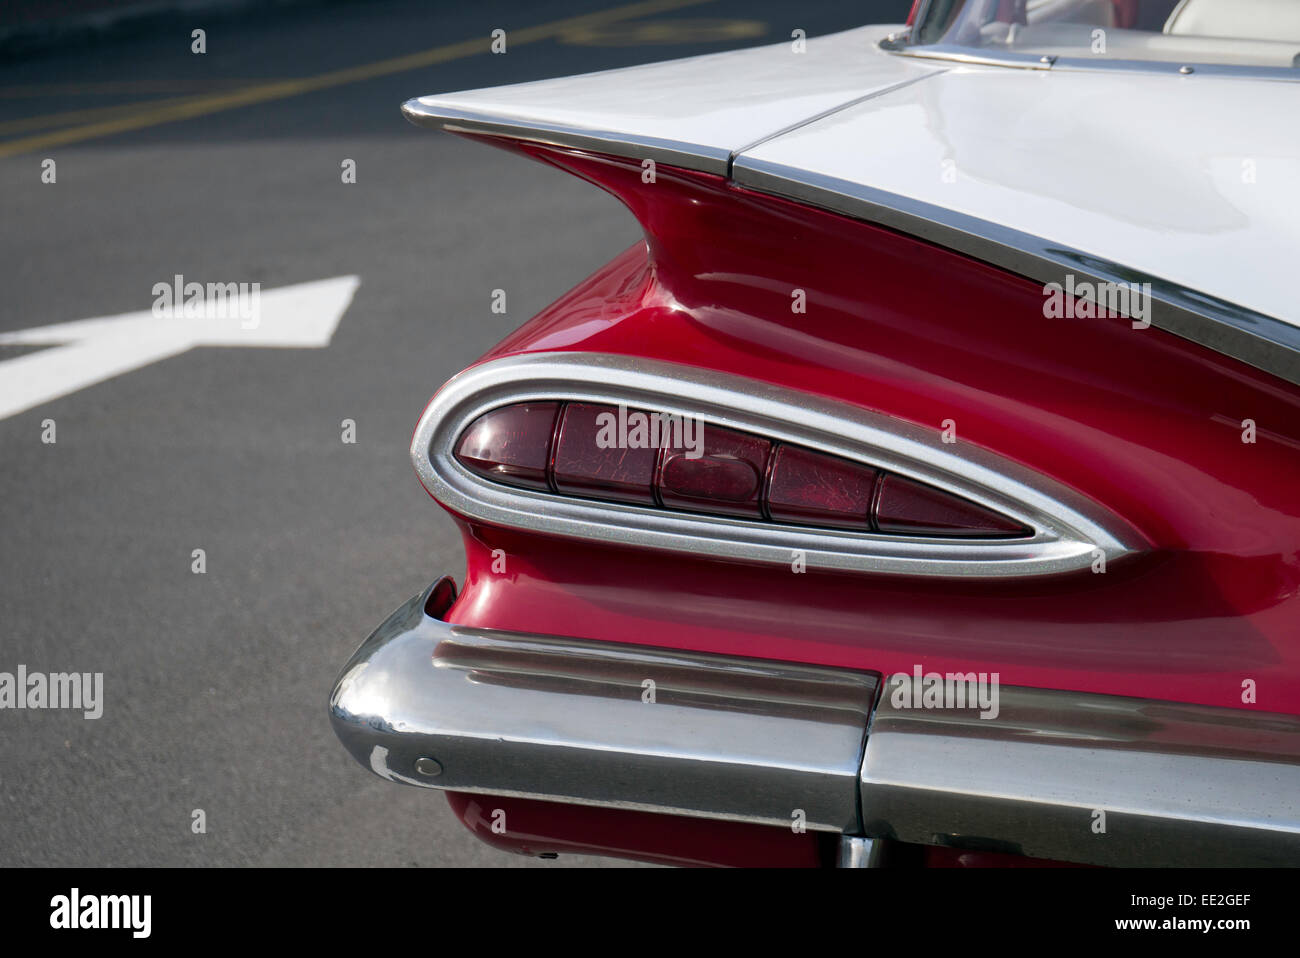 The tail of a classic 1950 s chevrolet chevy impala probably a 1959 sedan